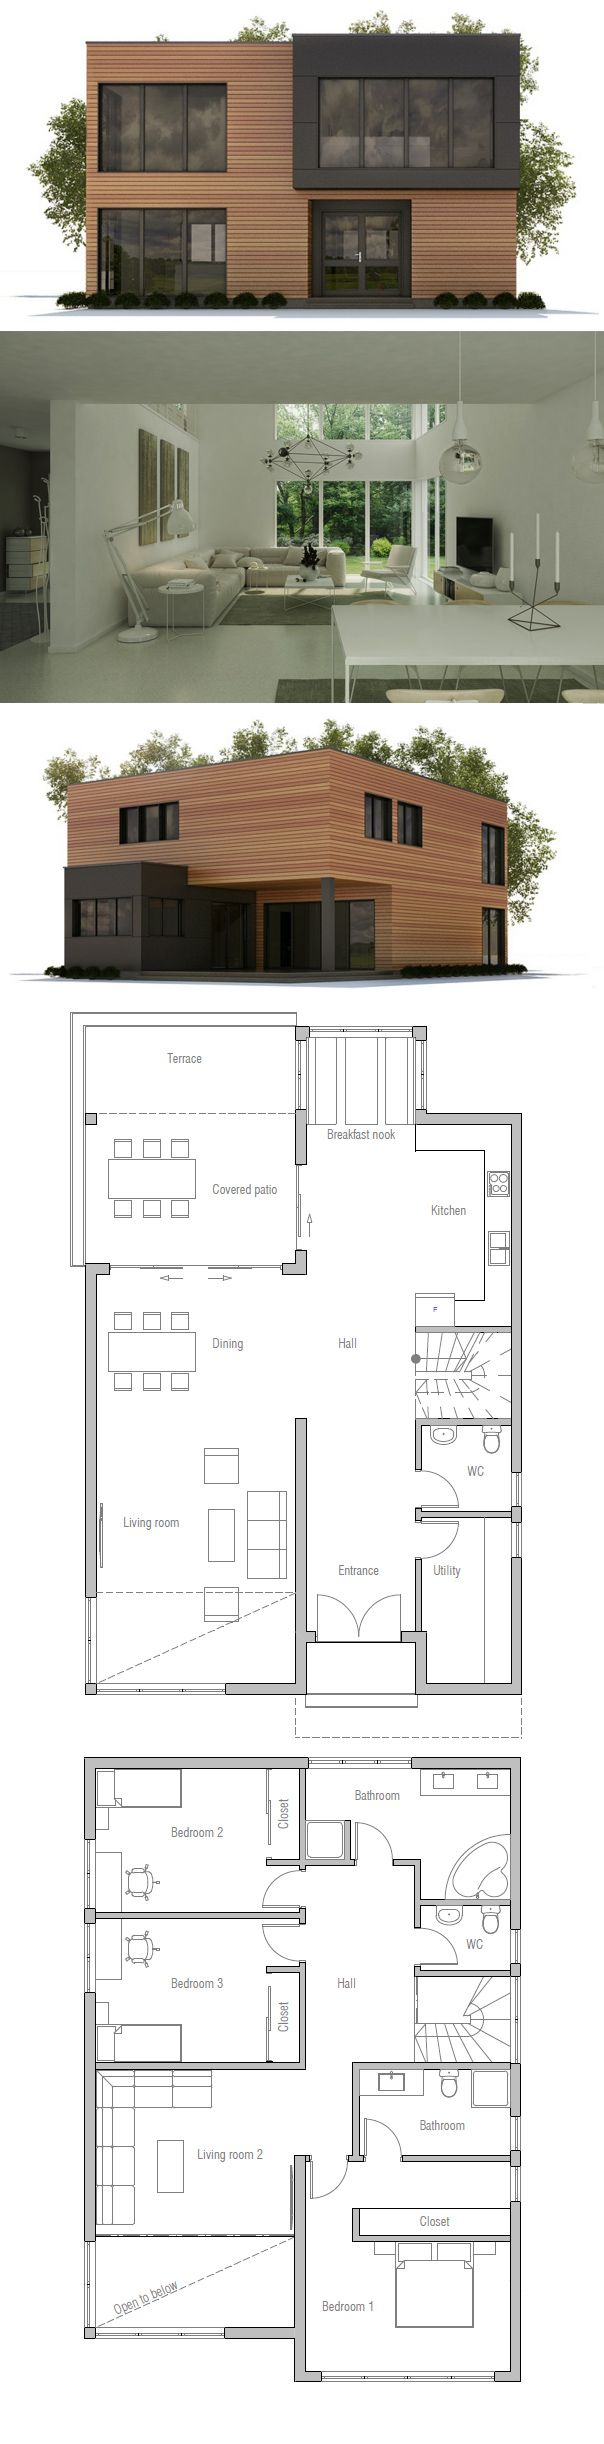 House Plan ........................................................ Please save this pin... ........................................................... Because For Real Estate Investing... Visit! http://LandFind.net